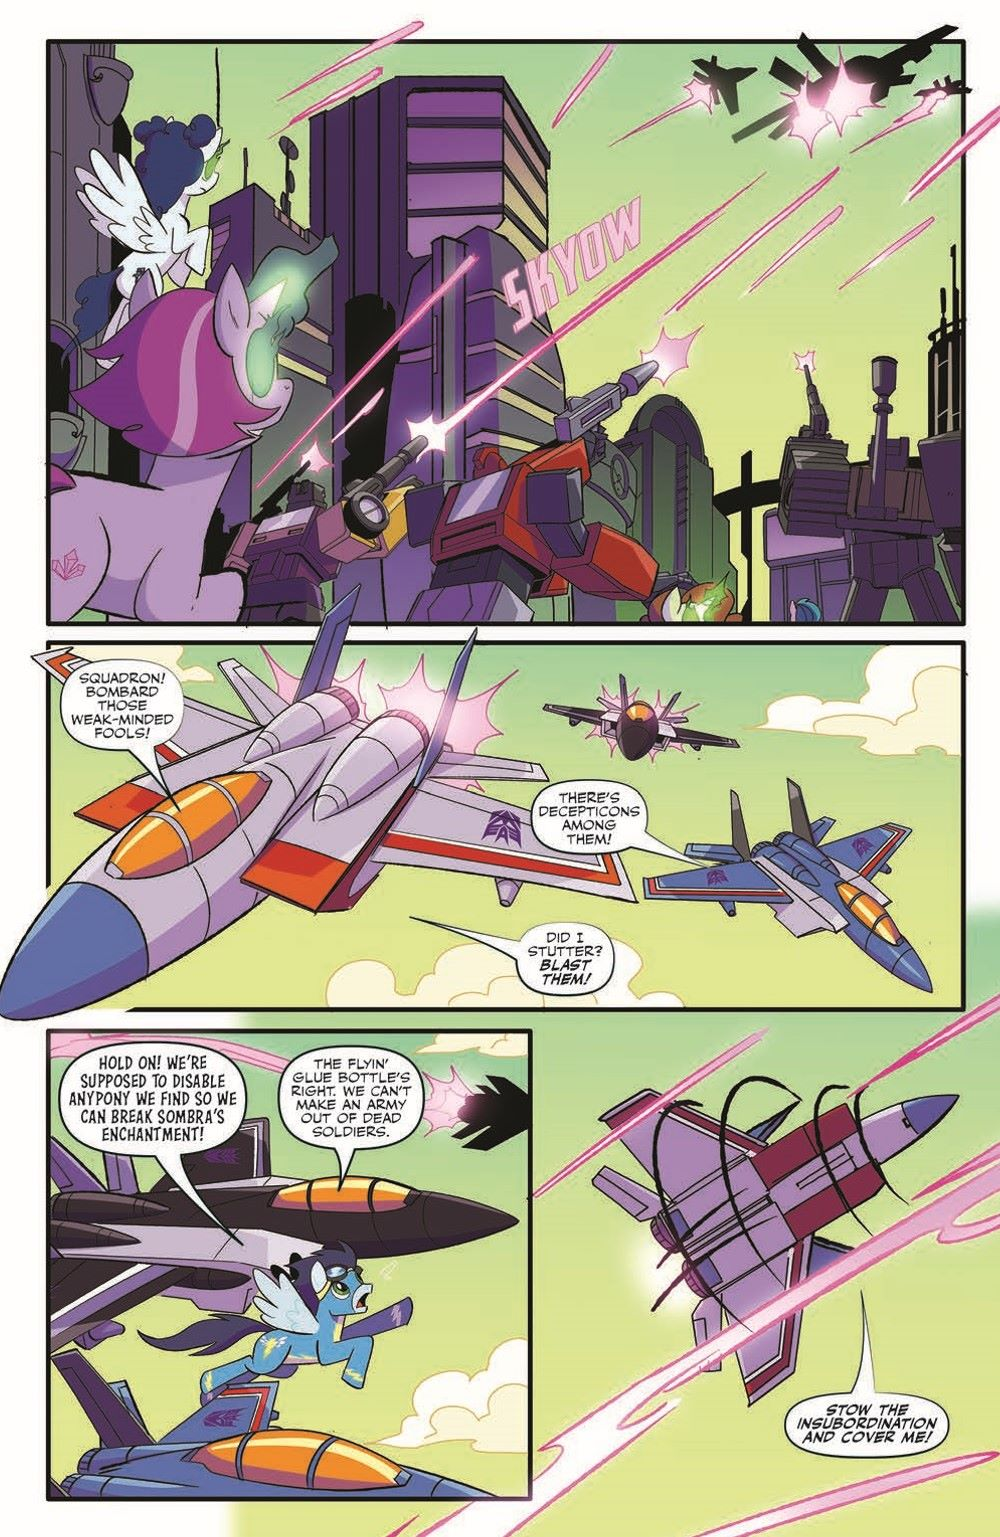 TFMLP2-02-pr-5 ComicList Previews: MY LITTLE PONY TRANSFORMERS II #2 (OF 4)